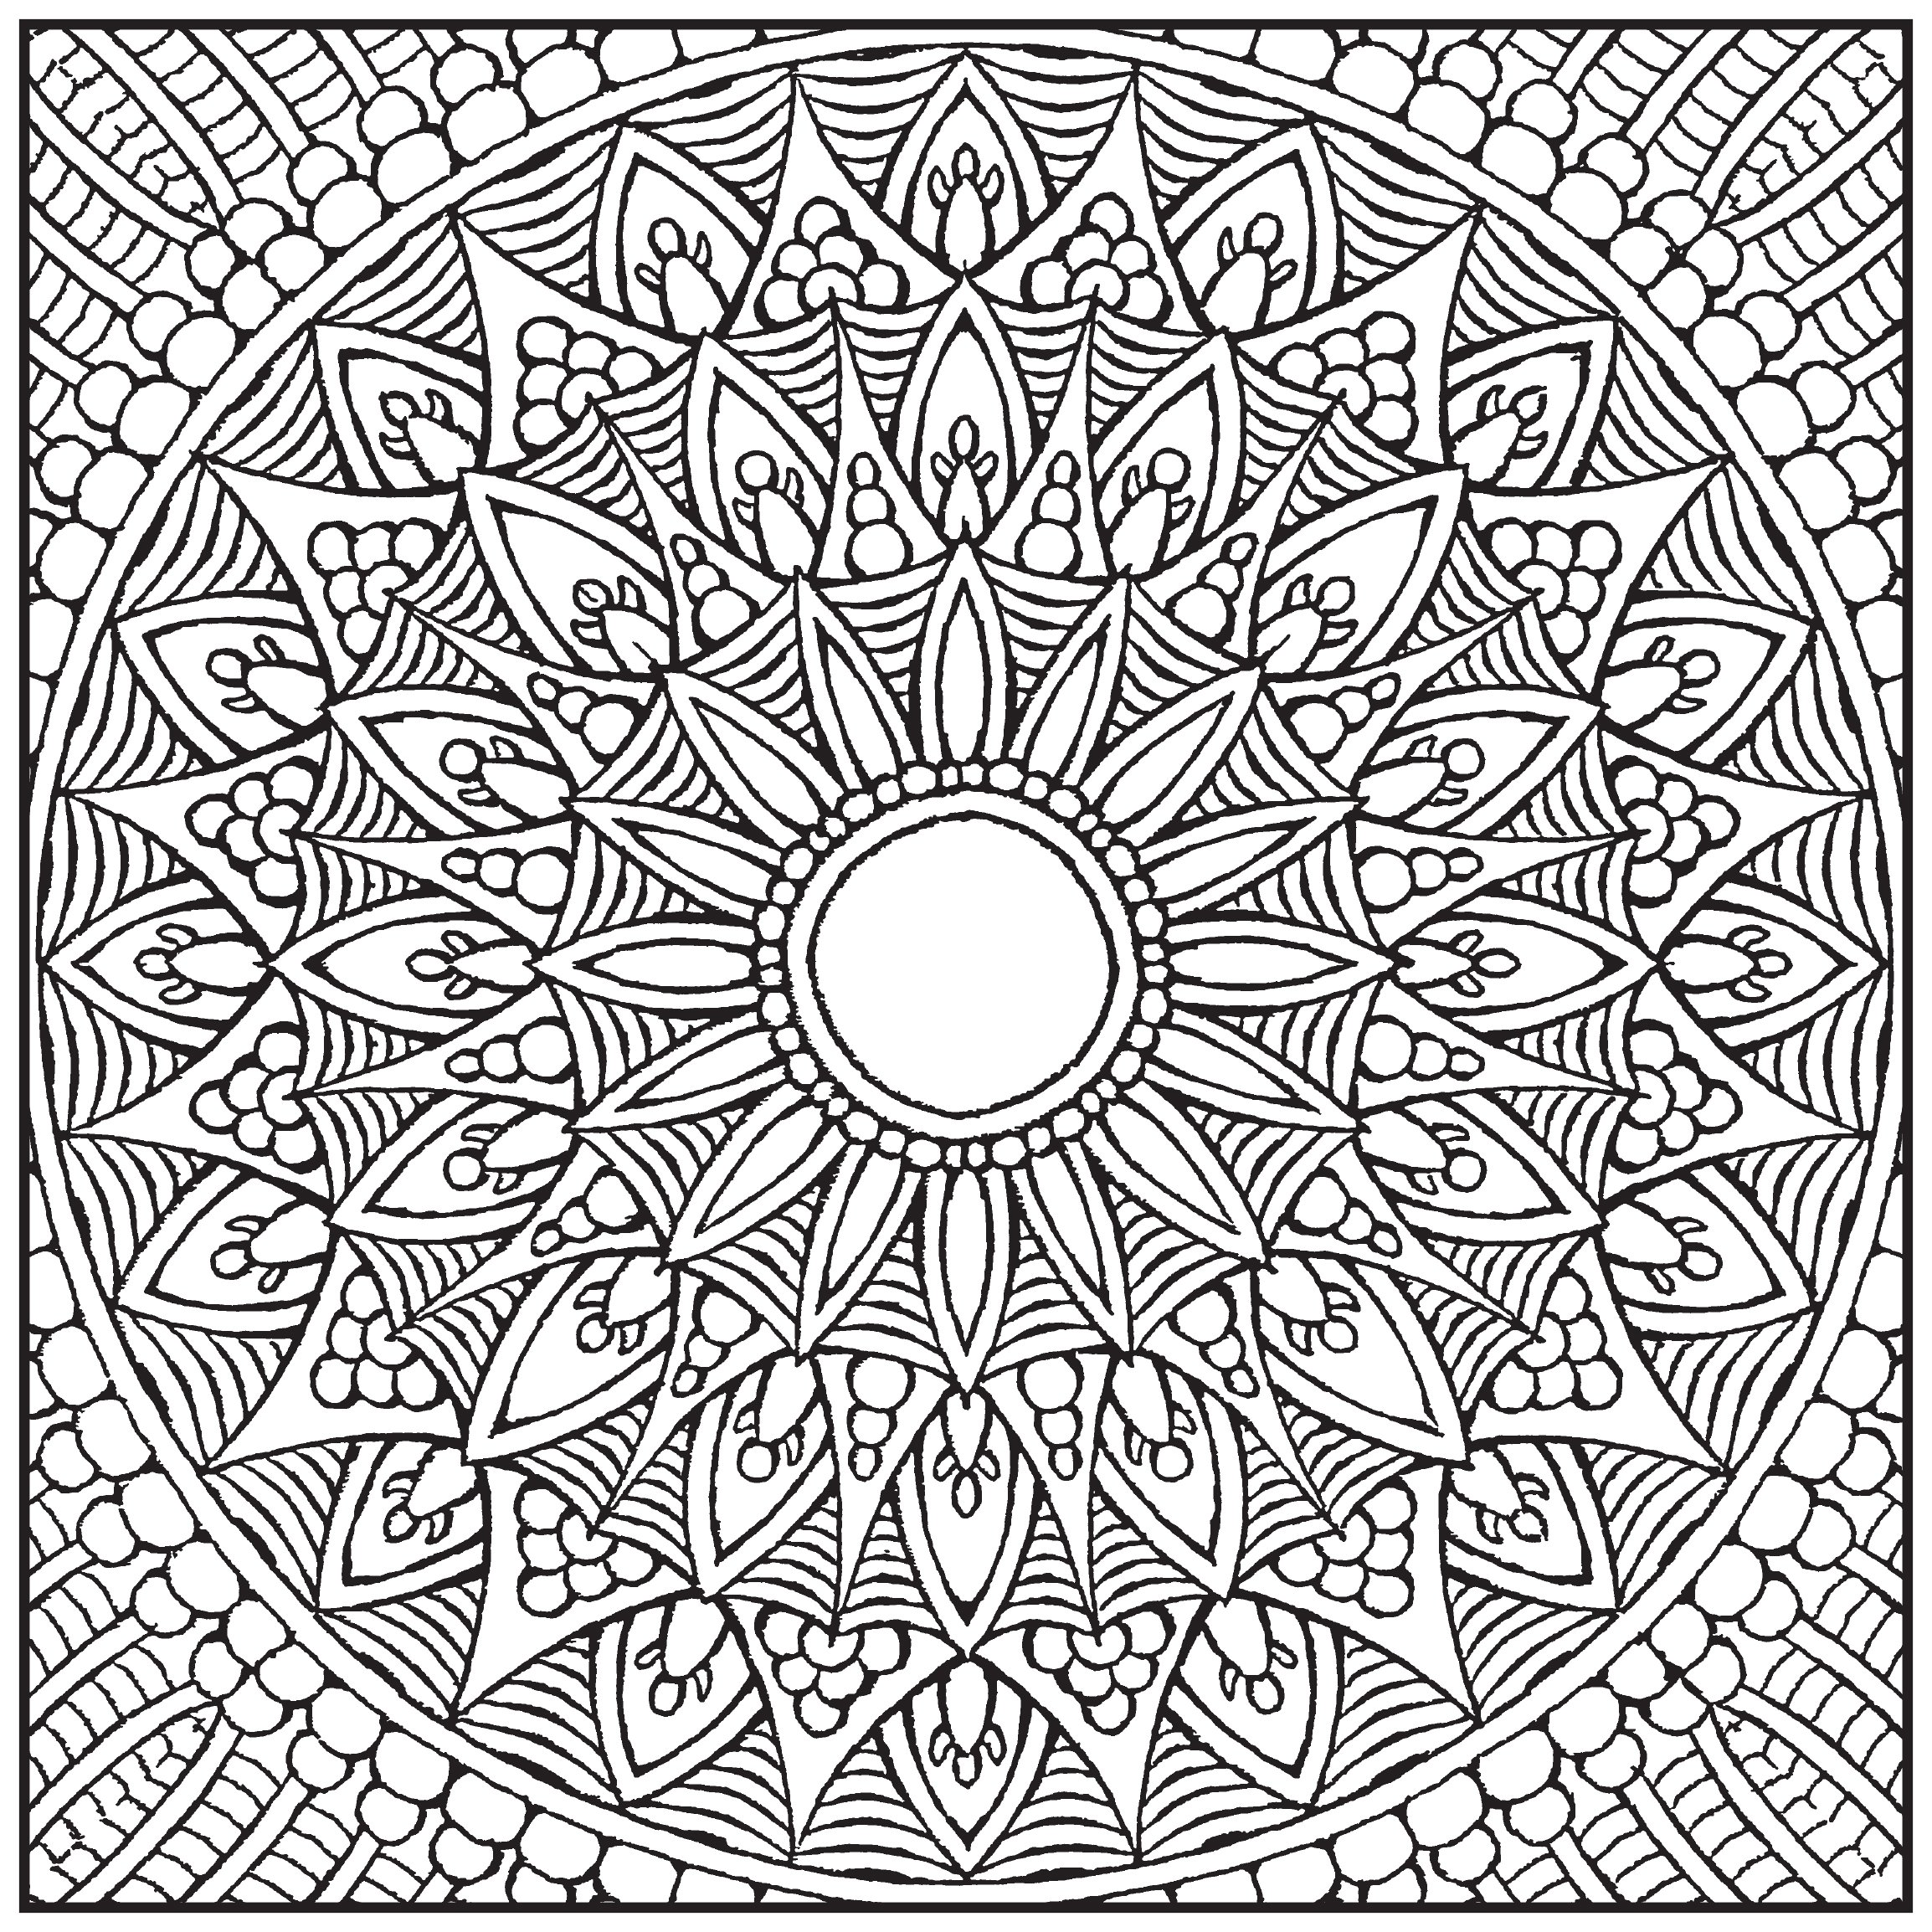 Amazoncom Mandalas Adult Coloring Book With Bonus Relaxation Music